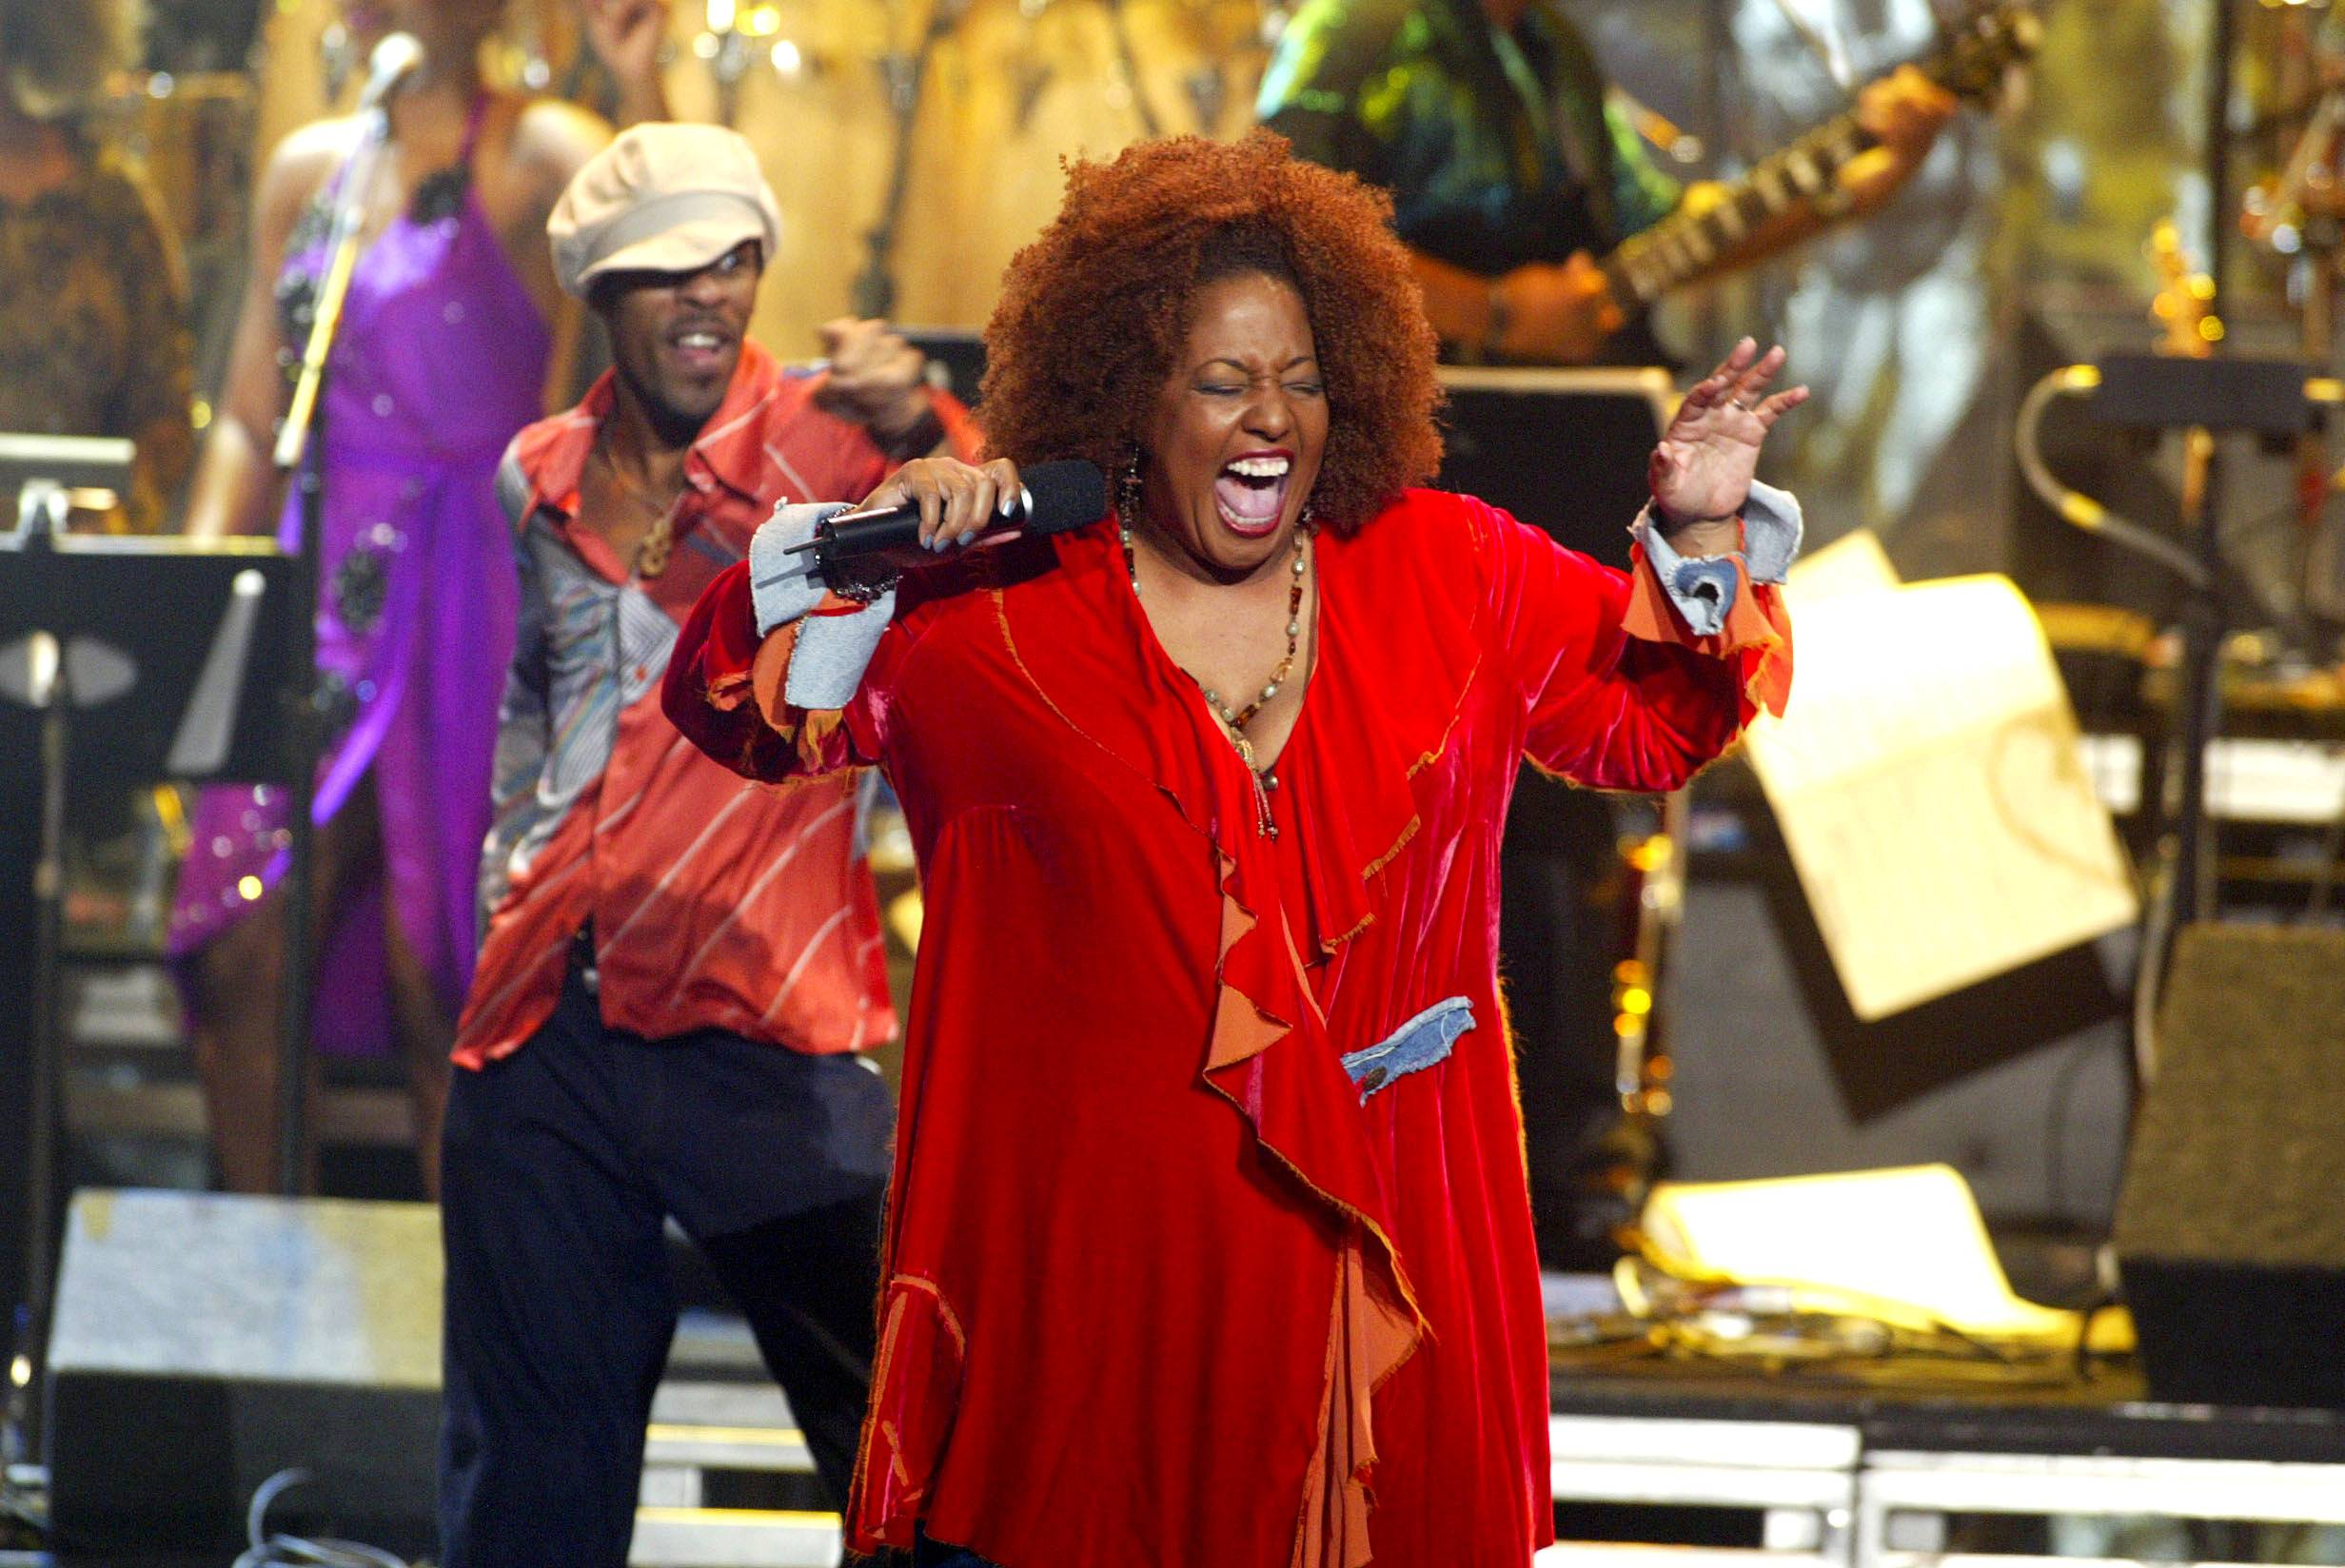 Cheryl Lynn - Disco star Cheryl Lynn is known for her 1978 hit ?Got to Be Real,? but did you know she got her big break after performing on The Gong Show? Following her performance, record executives reached out in order to sign Lynn to a deal.(Photo: Kevin Winter/ImageDirect)